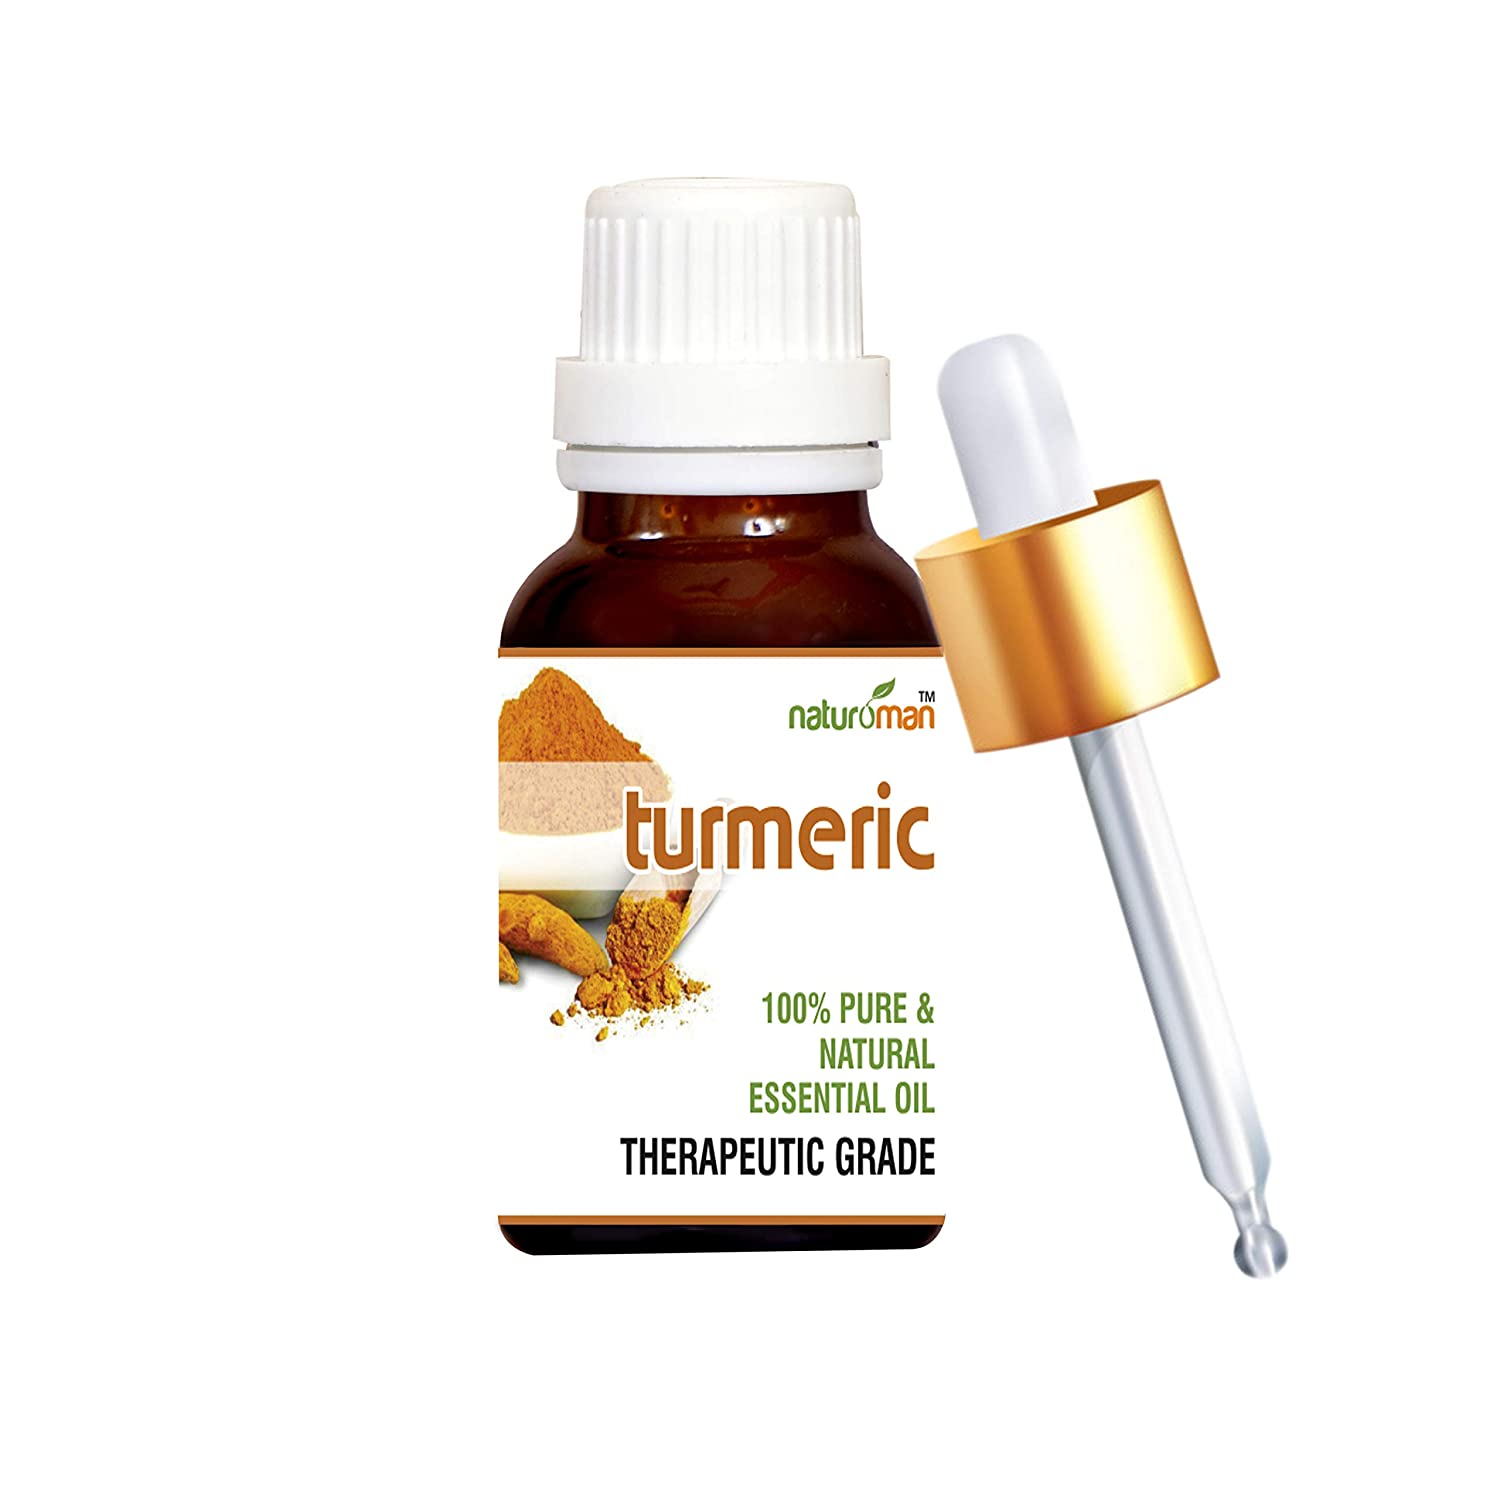 Buy Naturoman Turmeric Pure And Natural Essential Oil Therapeutic Grade For Liver Health And Fight Colon Cancer 15 Ml Online At Low Prices In India Amazon In